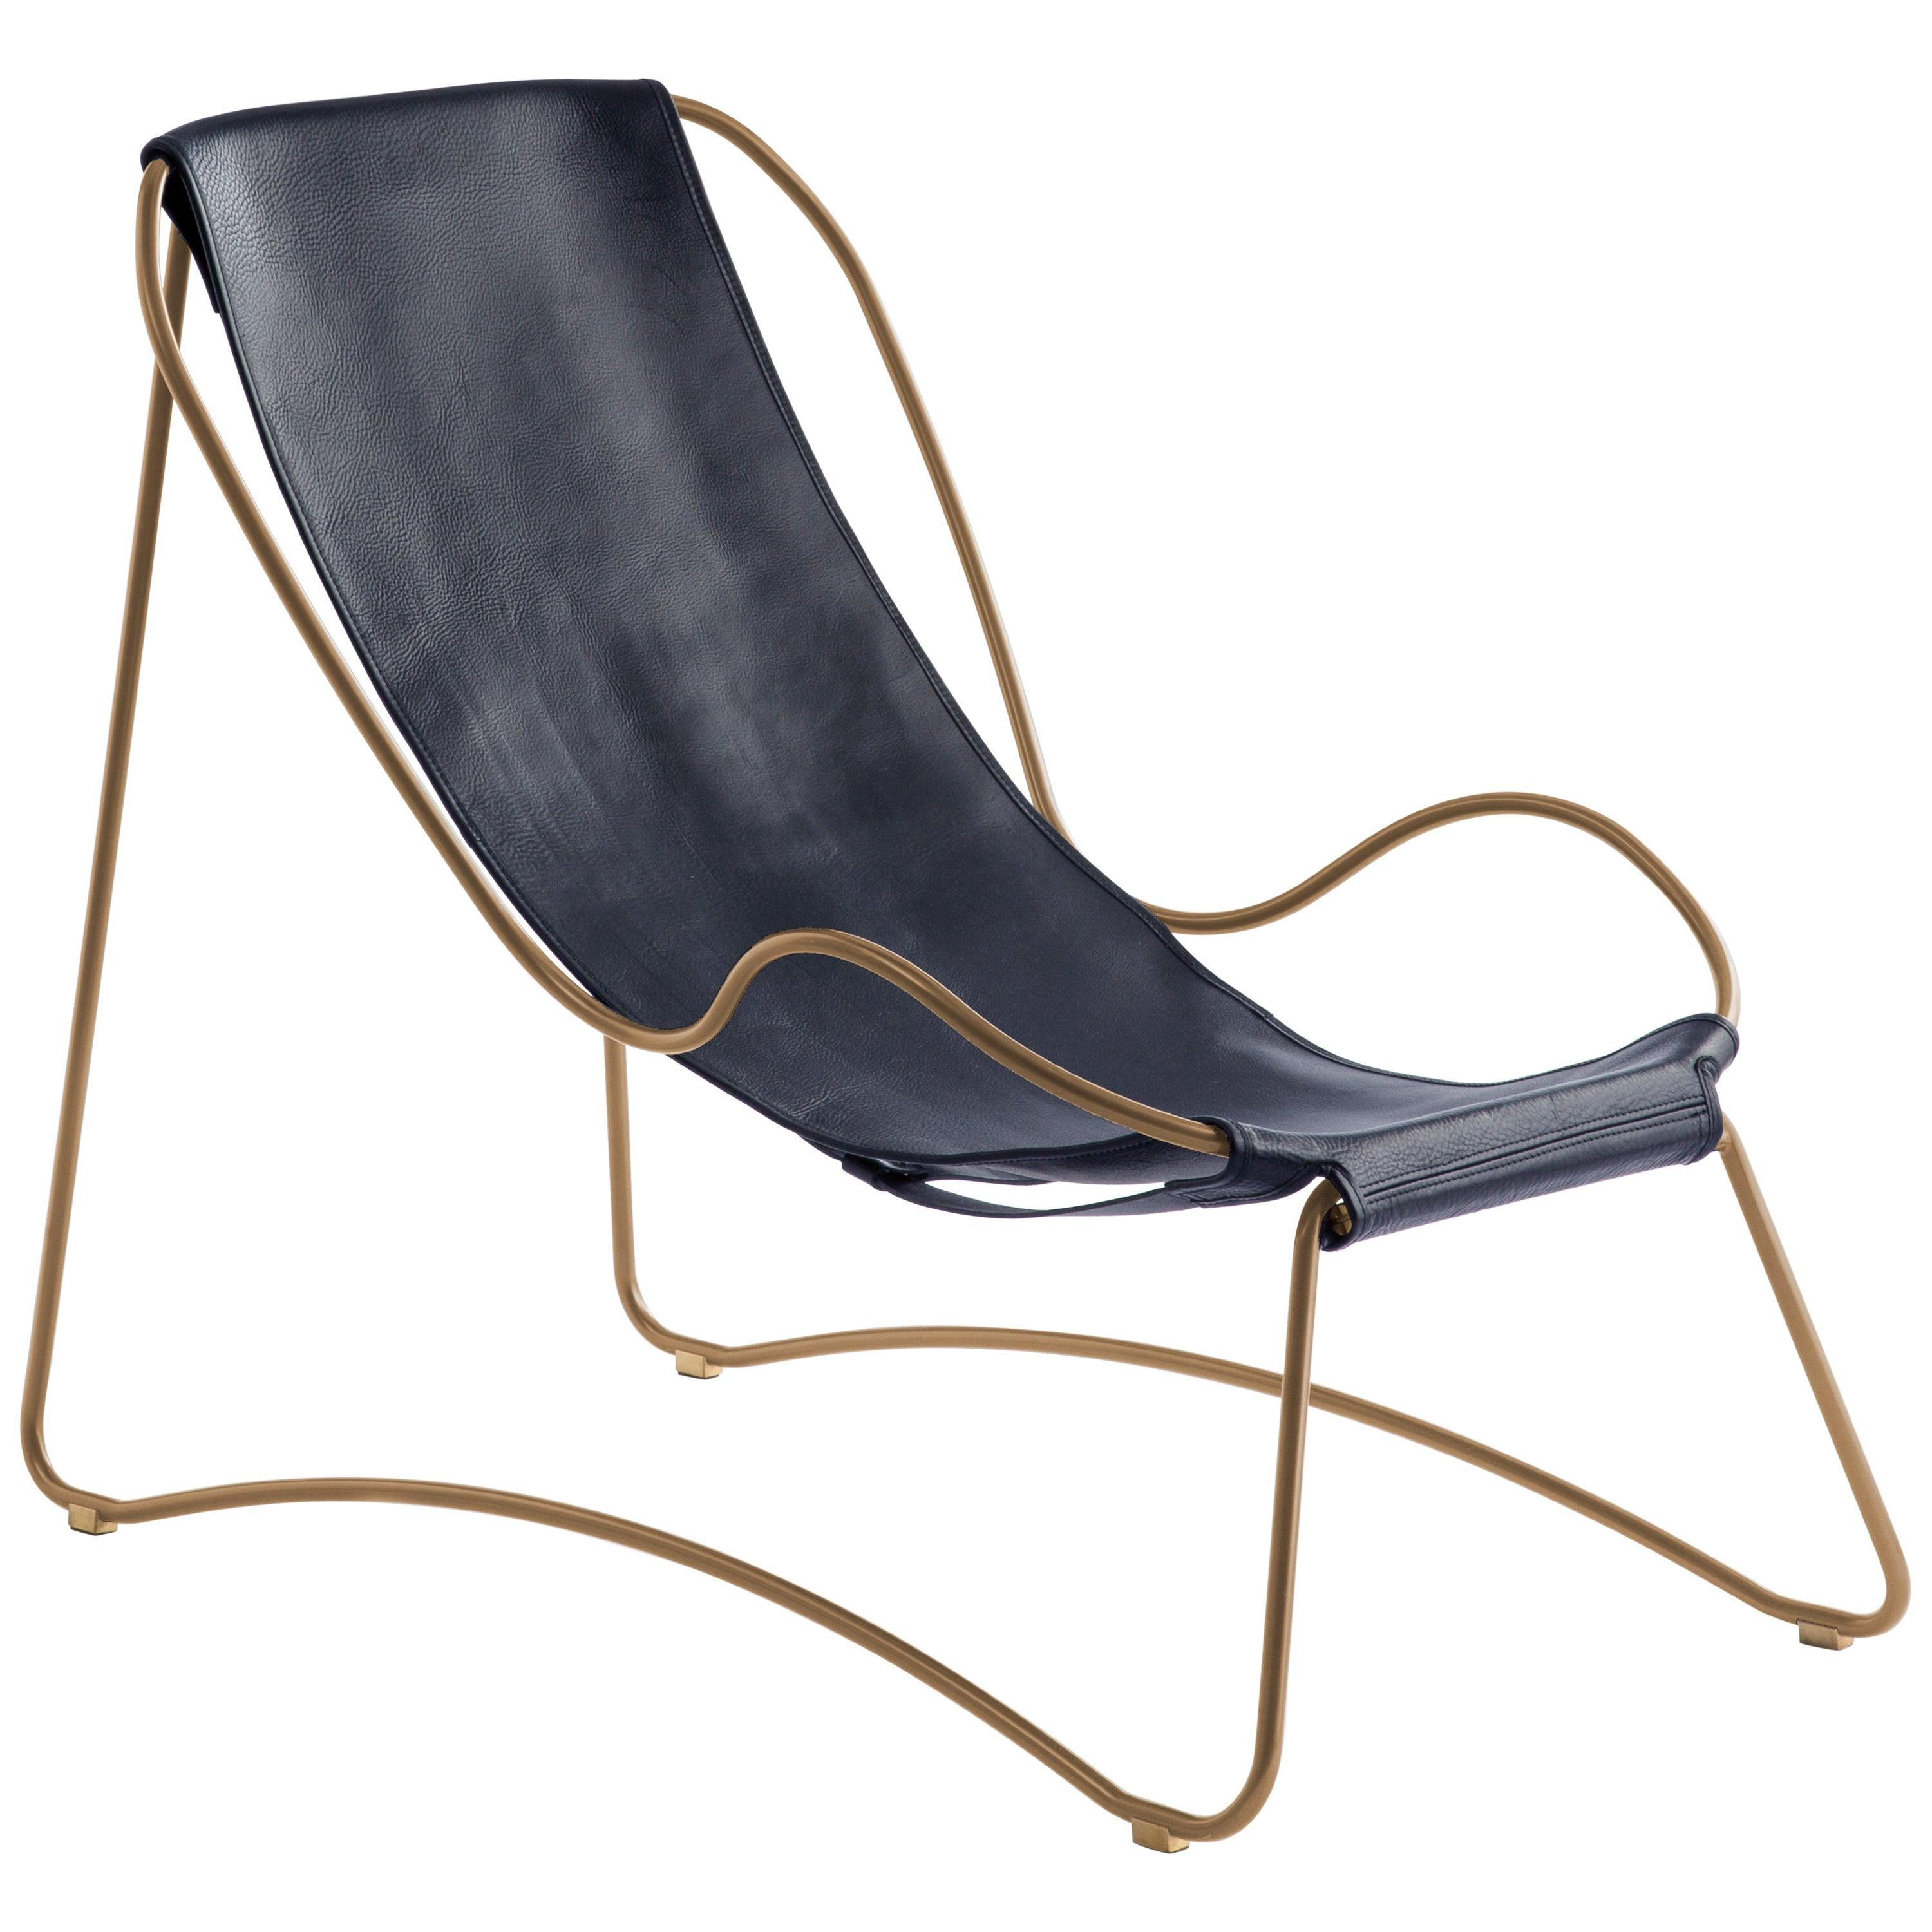 Jover + Valls Lounge Chairs